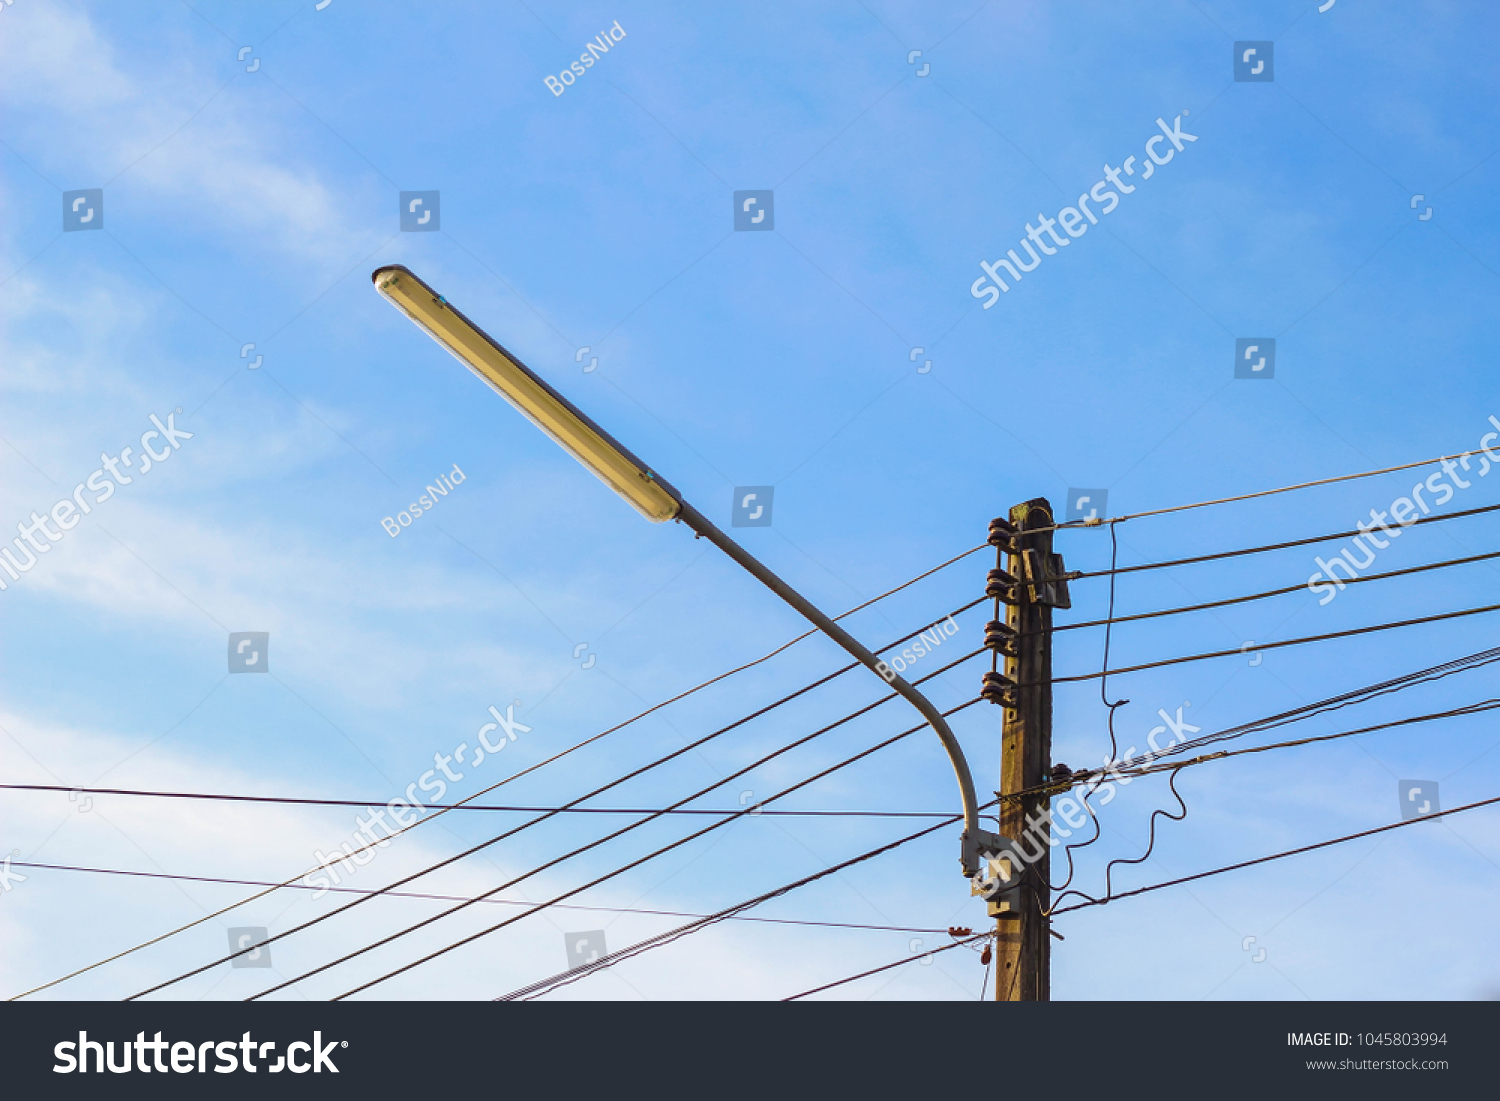 Electric Pole Wires Blue Background Stock Photo (Royalty Free ...